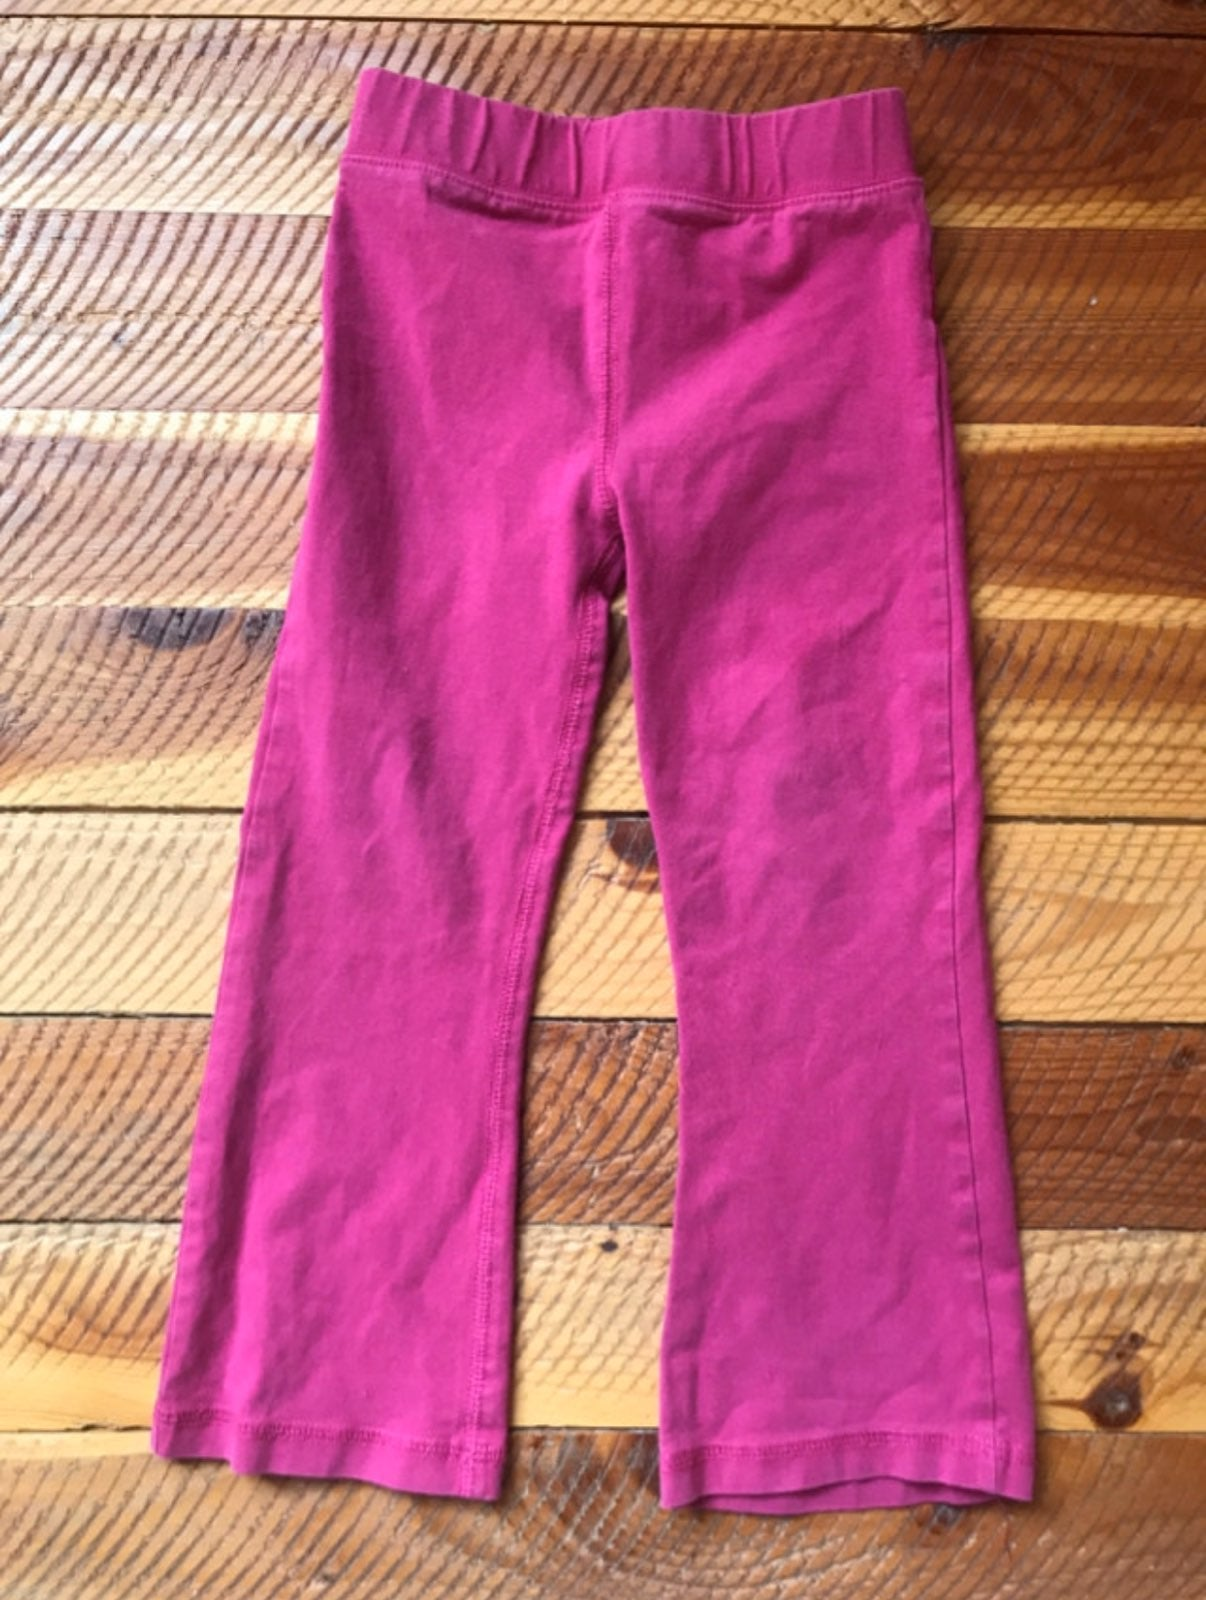 Primary leggings wide leg Pants